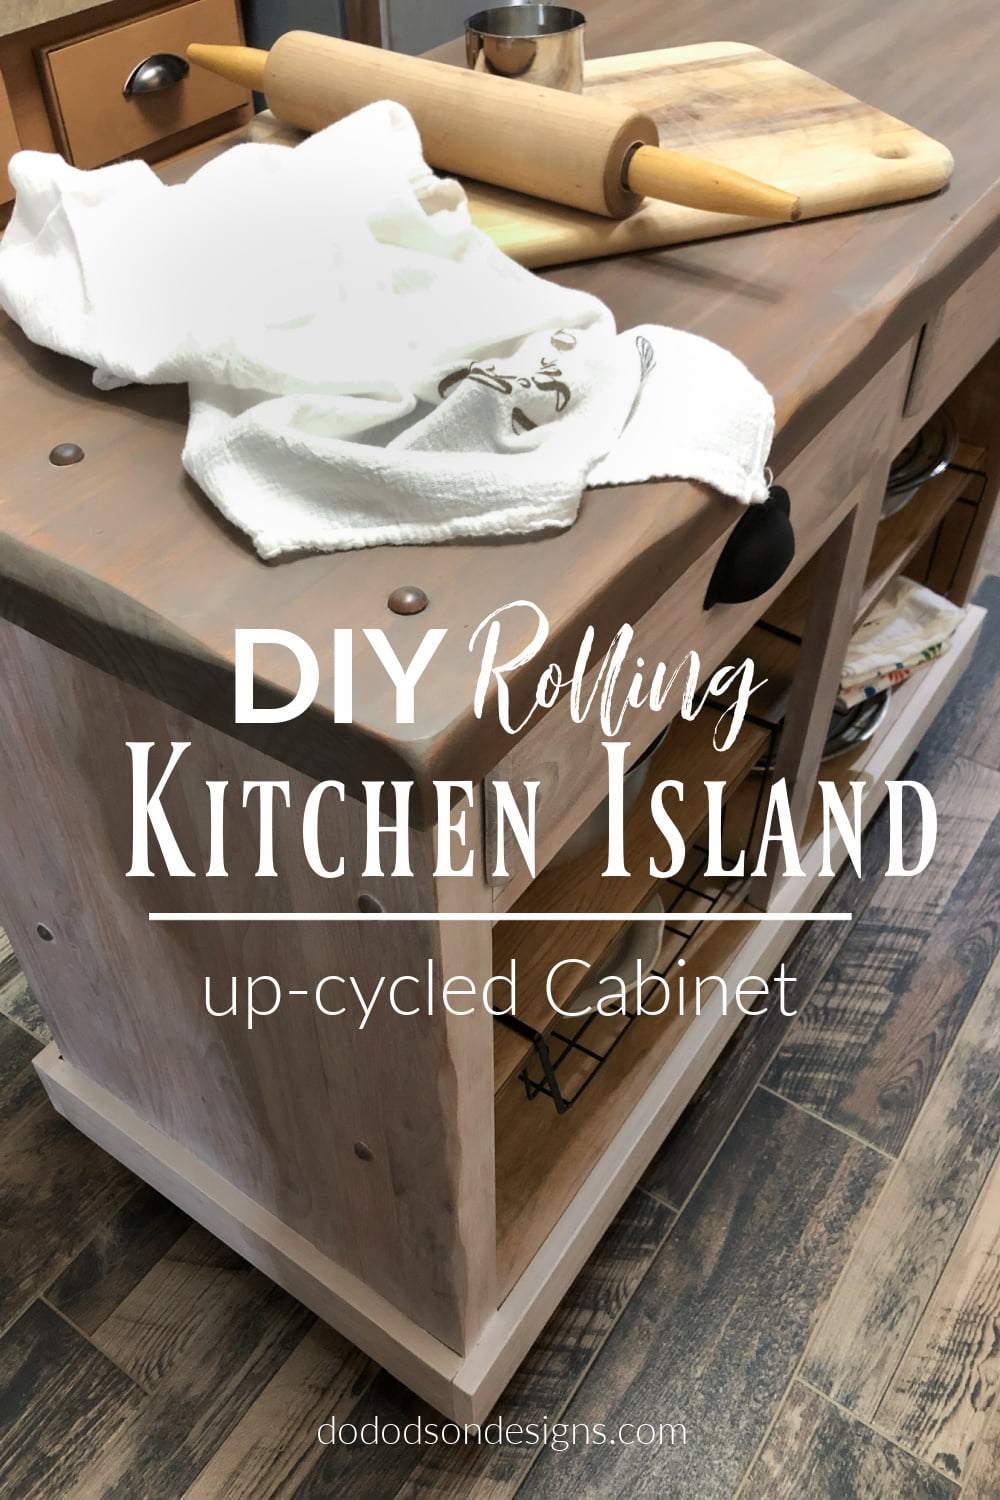 DIY Rolling Kitchen Island | Upcycled Cabinet Project